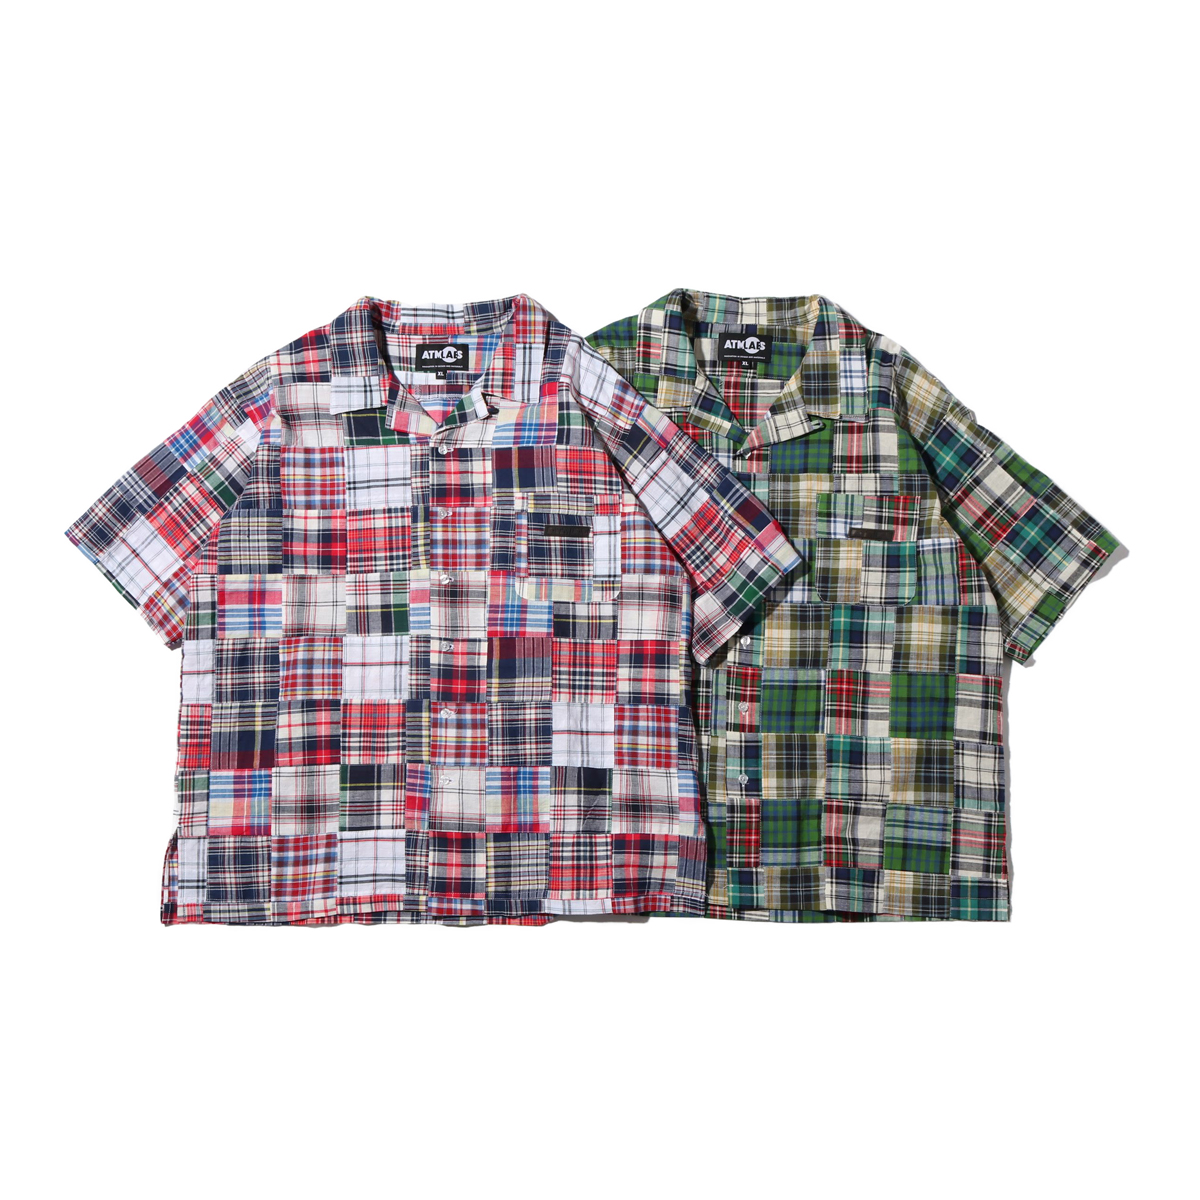 ATMOS LAB PATCHWORK OPEN COLLAR SHIRT